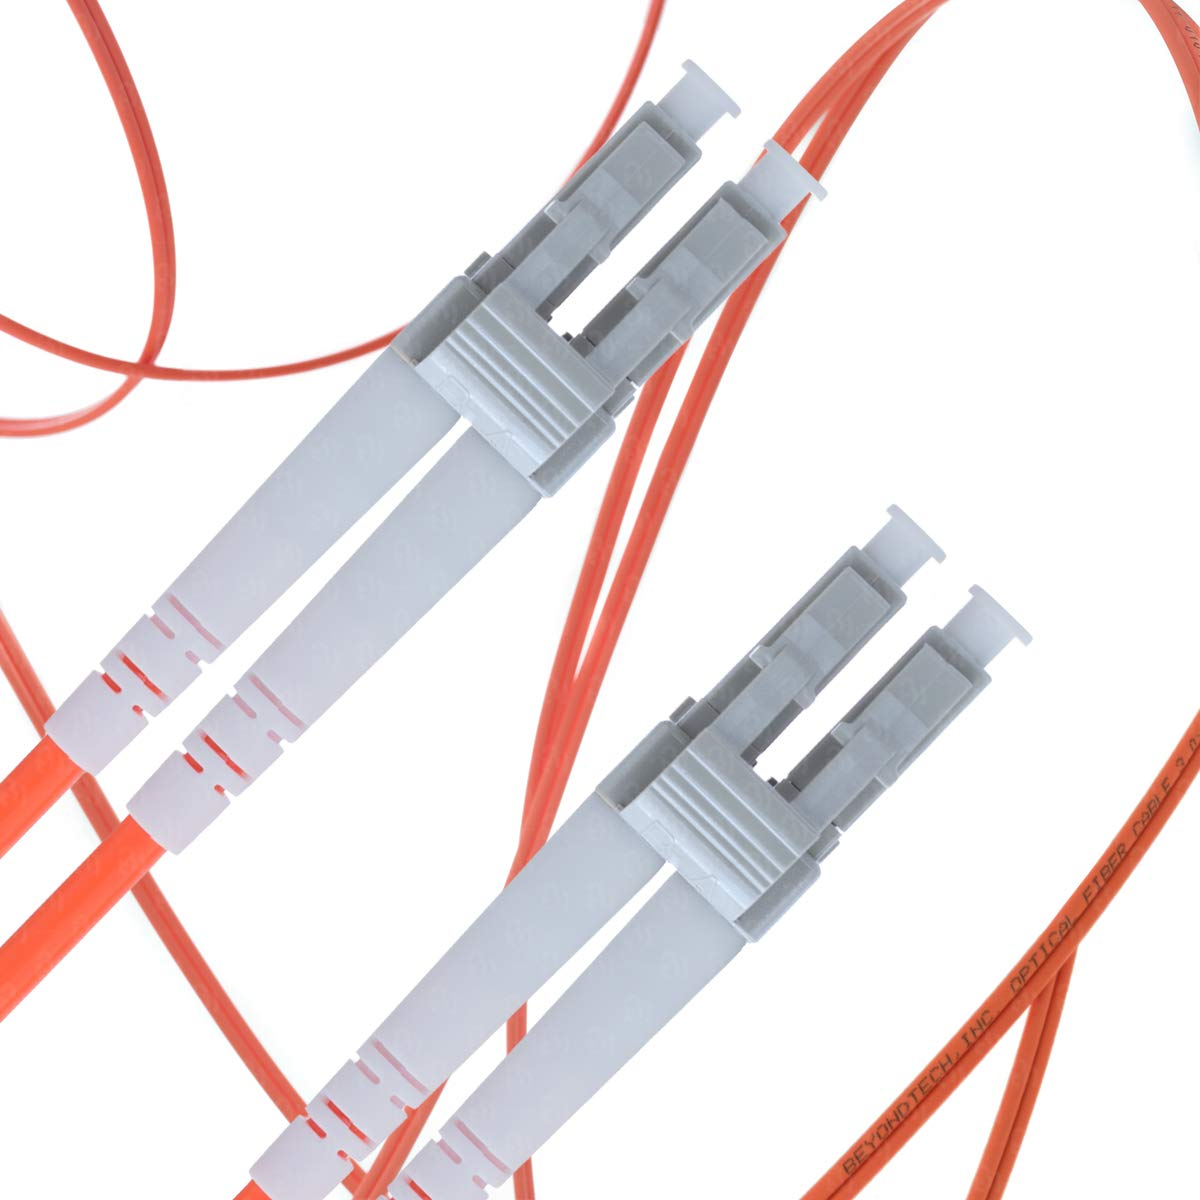 LC to LC Fiber Patch Cable Multimode Duplex - 25m (82ft) - 62.5/125 OM1 - Beyondtech PureOptics Series